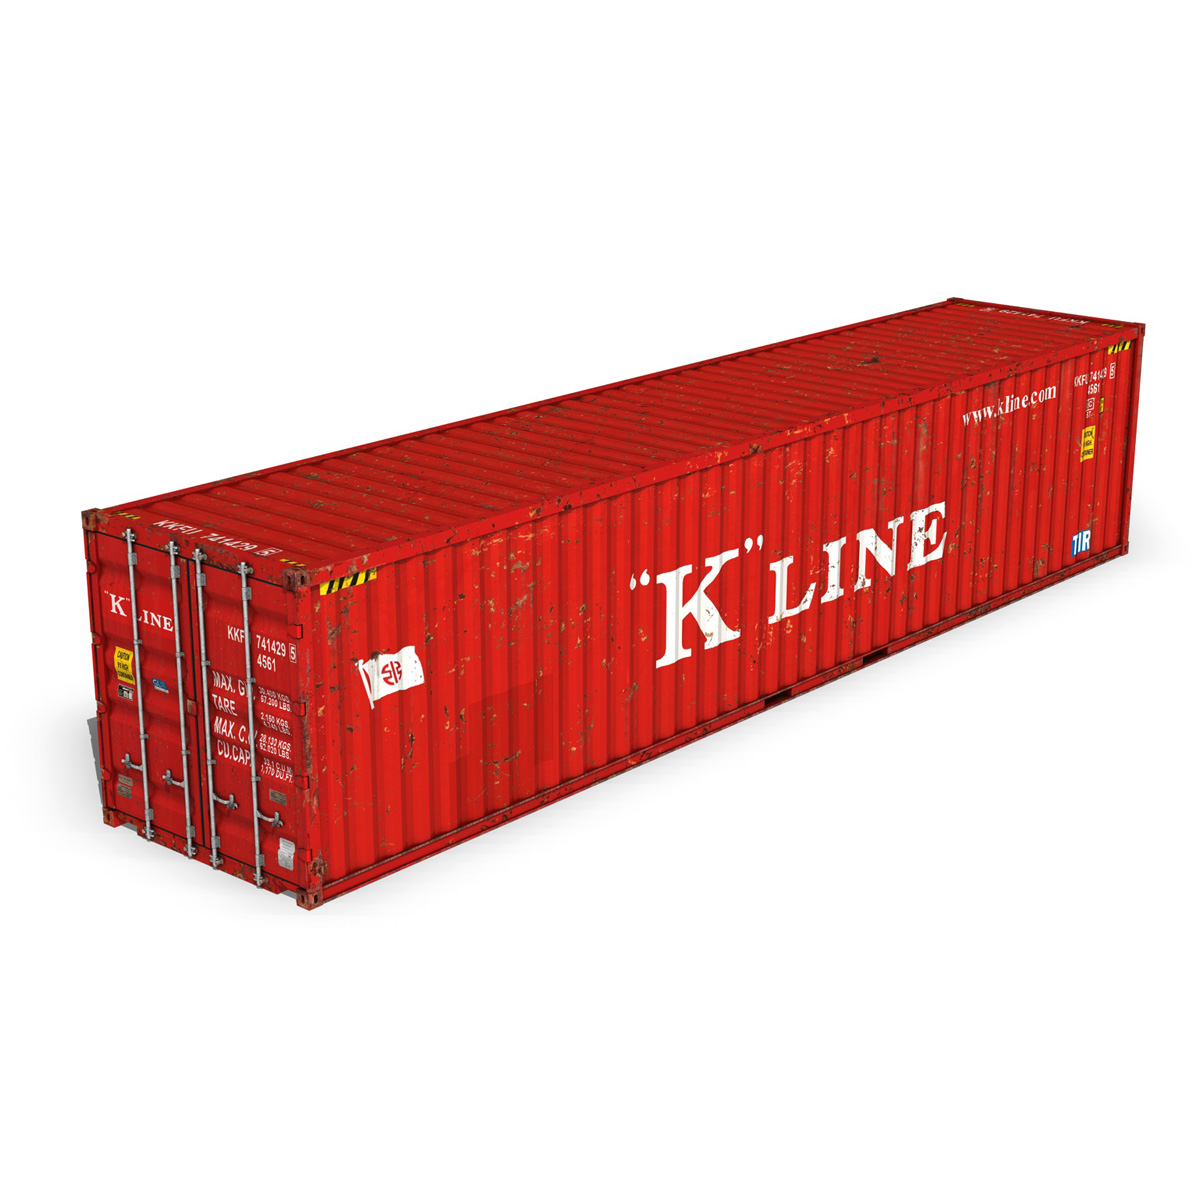 40ft shipping container – k line 3d model 3ds fbx lwo lw lws obj c4d 265118